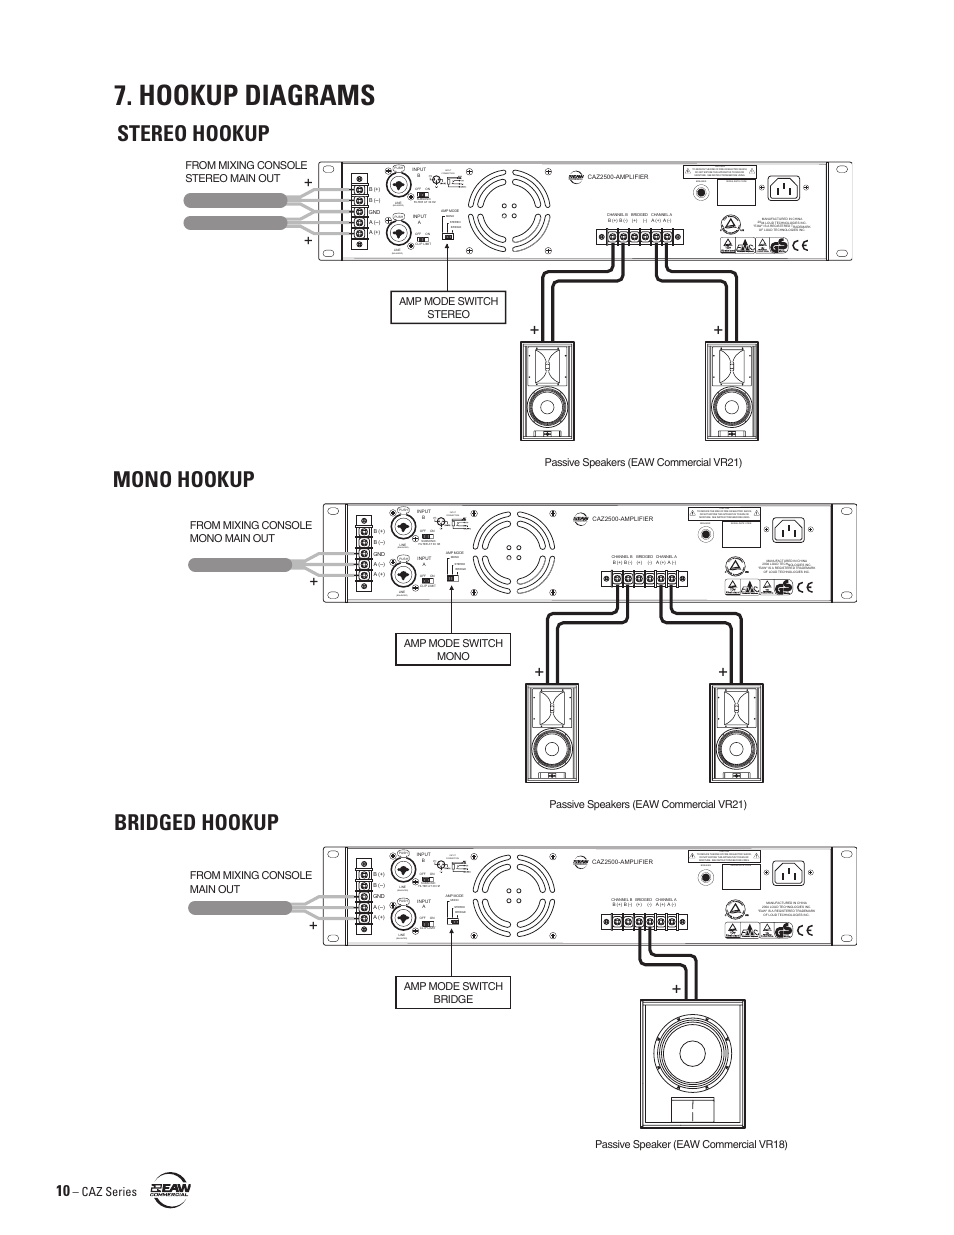 Hookup Diagrams Stereo Mono Bridged Balanced Hook Up Diagram Caz Series